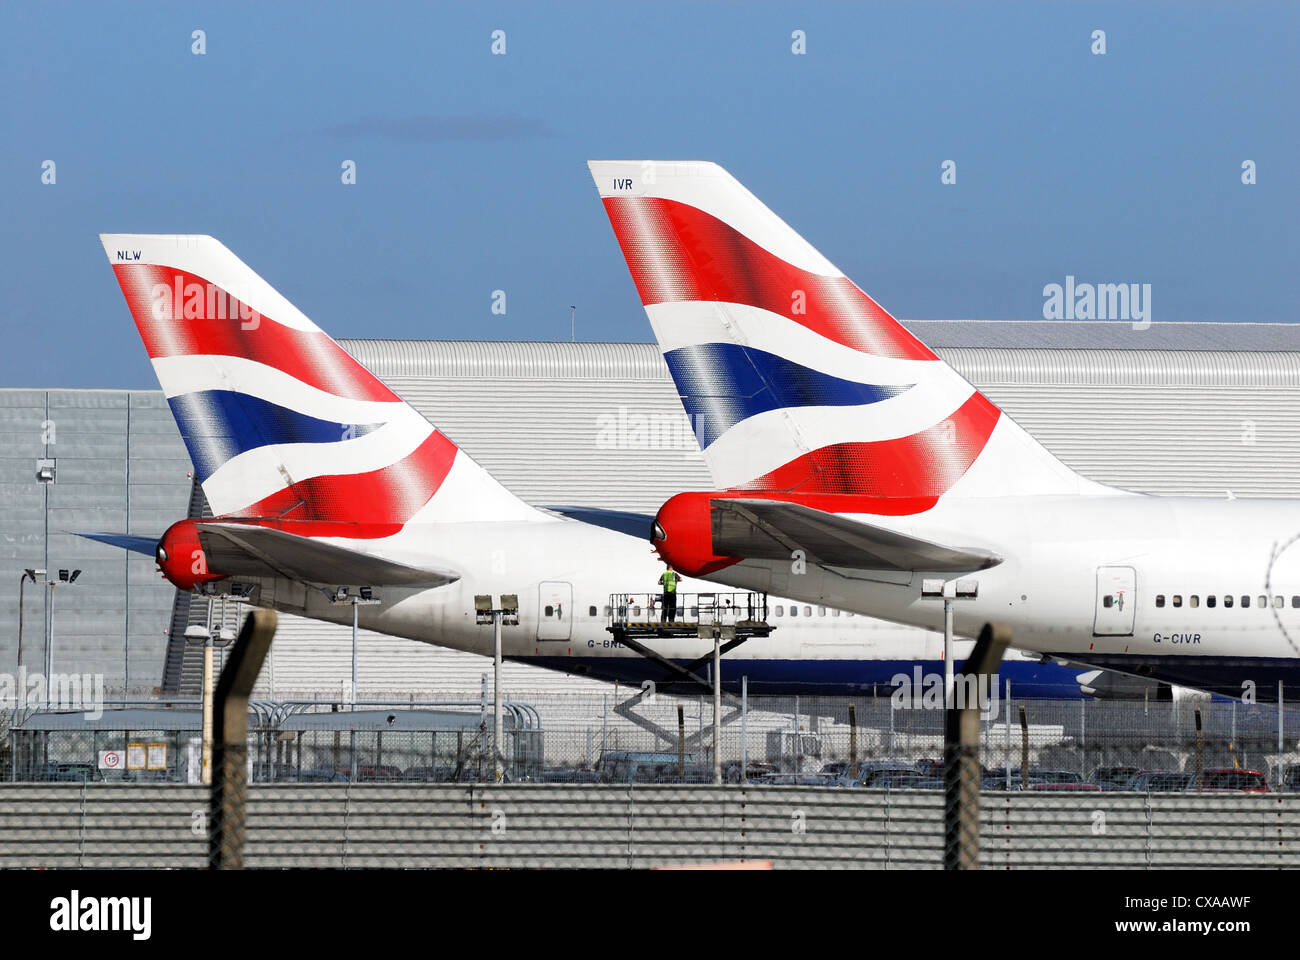 British Airways company logo on tail fins of two jet aircraft ,Heathrow London - Stock Image